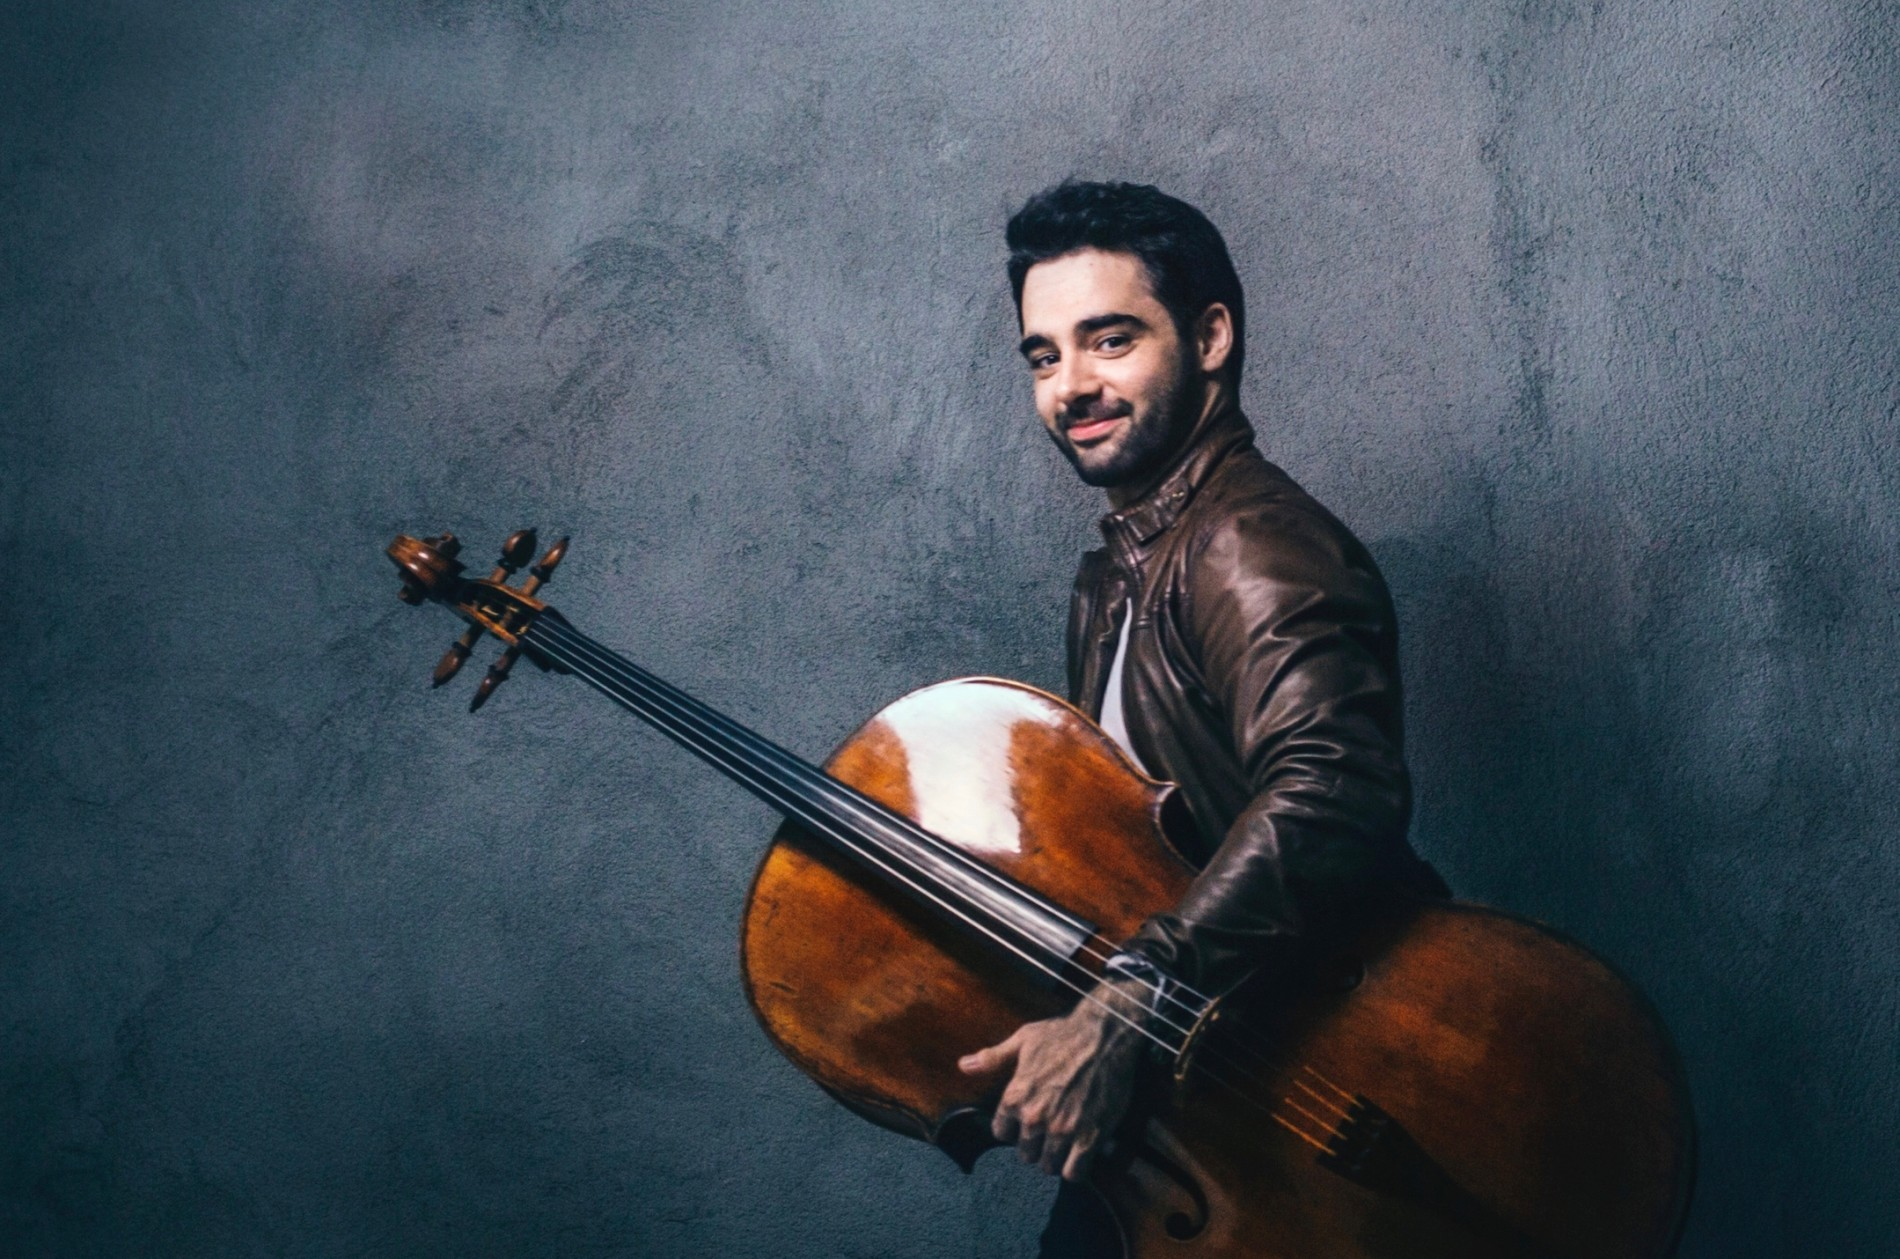 Pablo Ferrández, cellist, holding his instrument in left hand